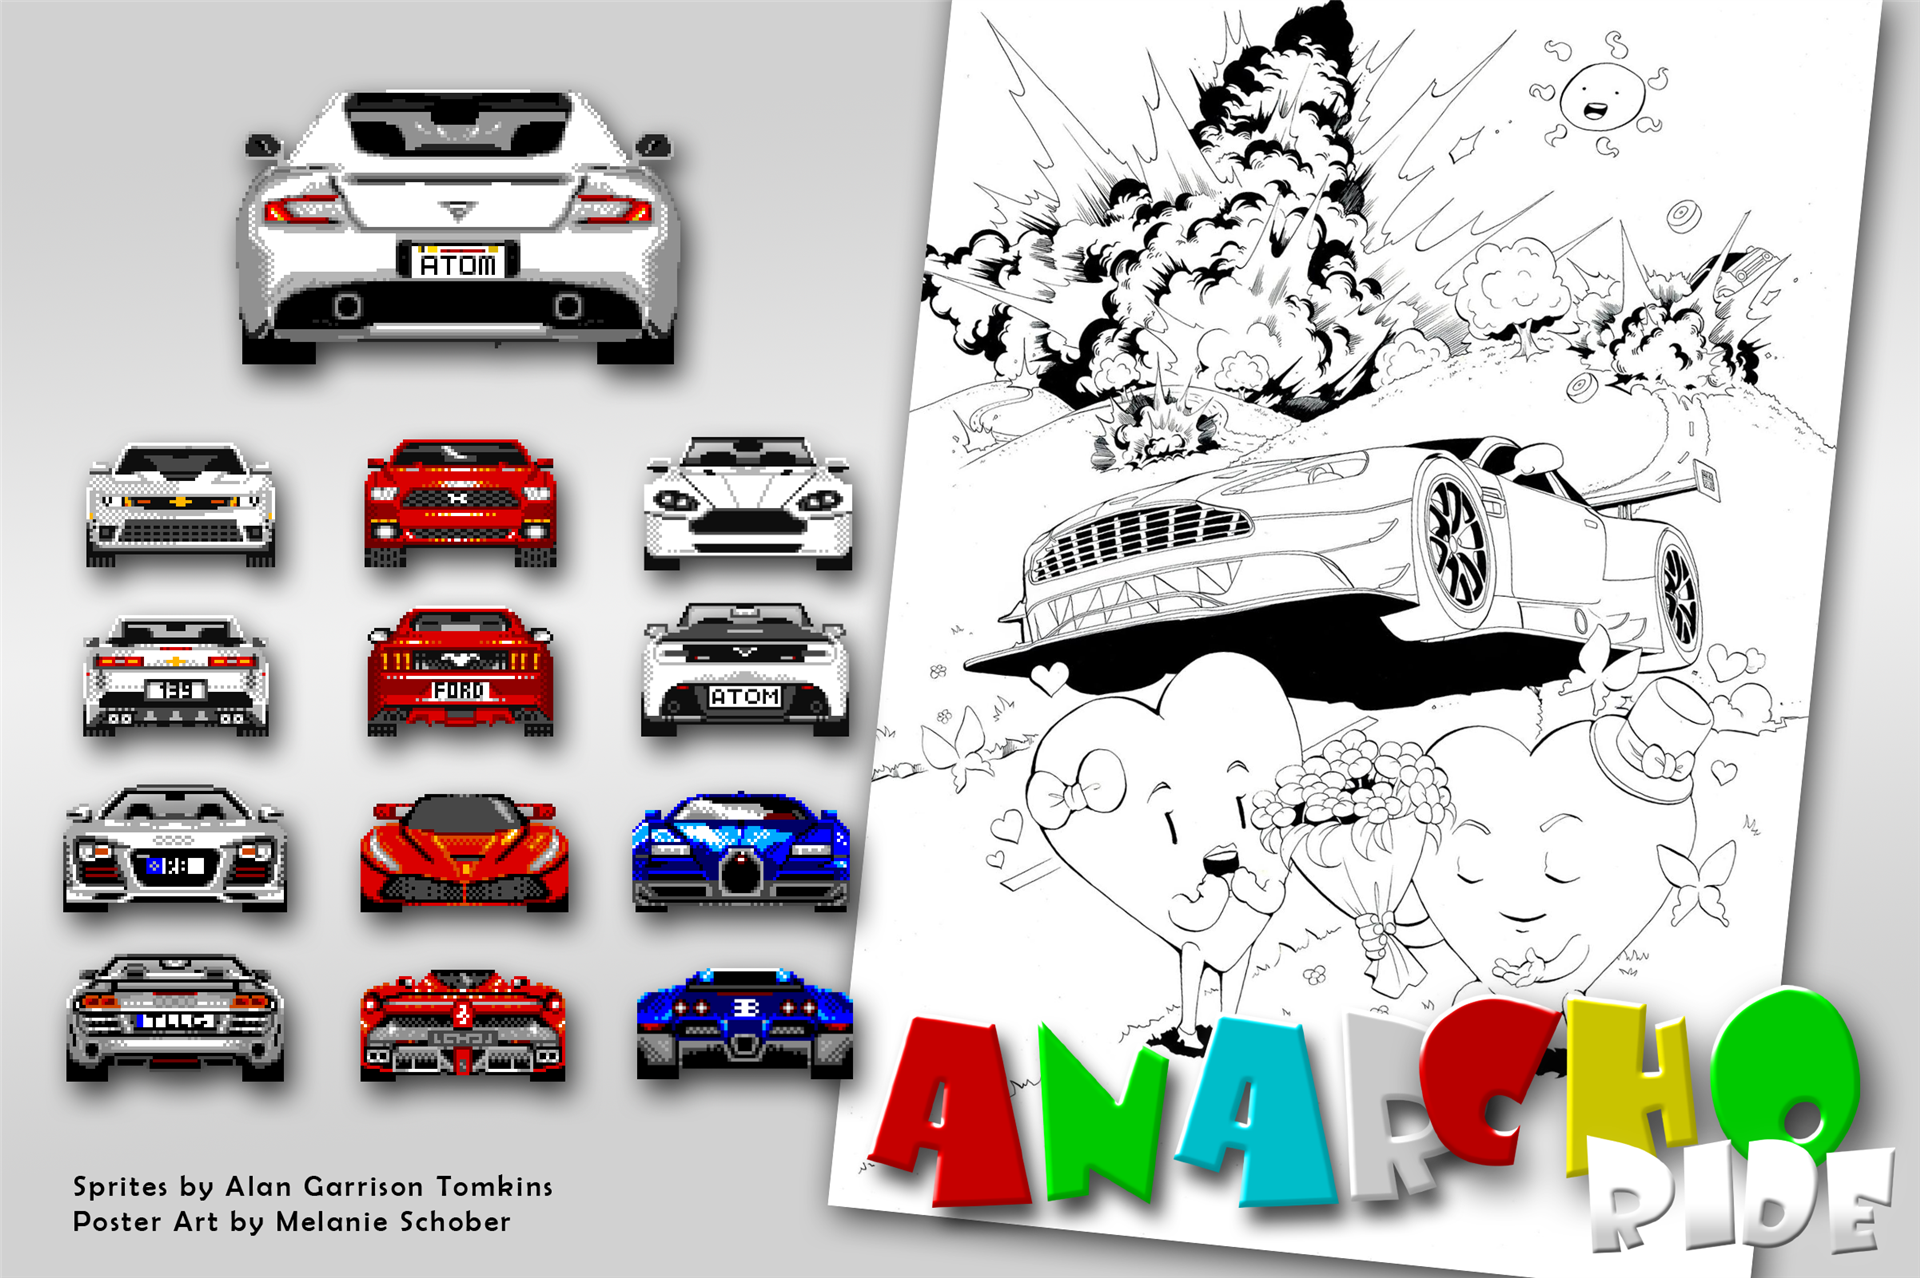 Some artwork by Alan Tomkins and the original poster sketch by Melanie Schober for the game Anarcho Ride.